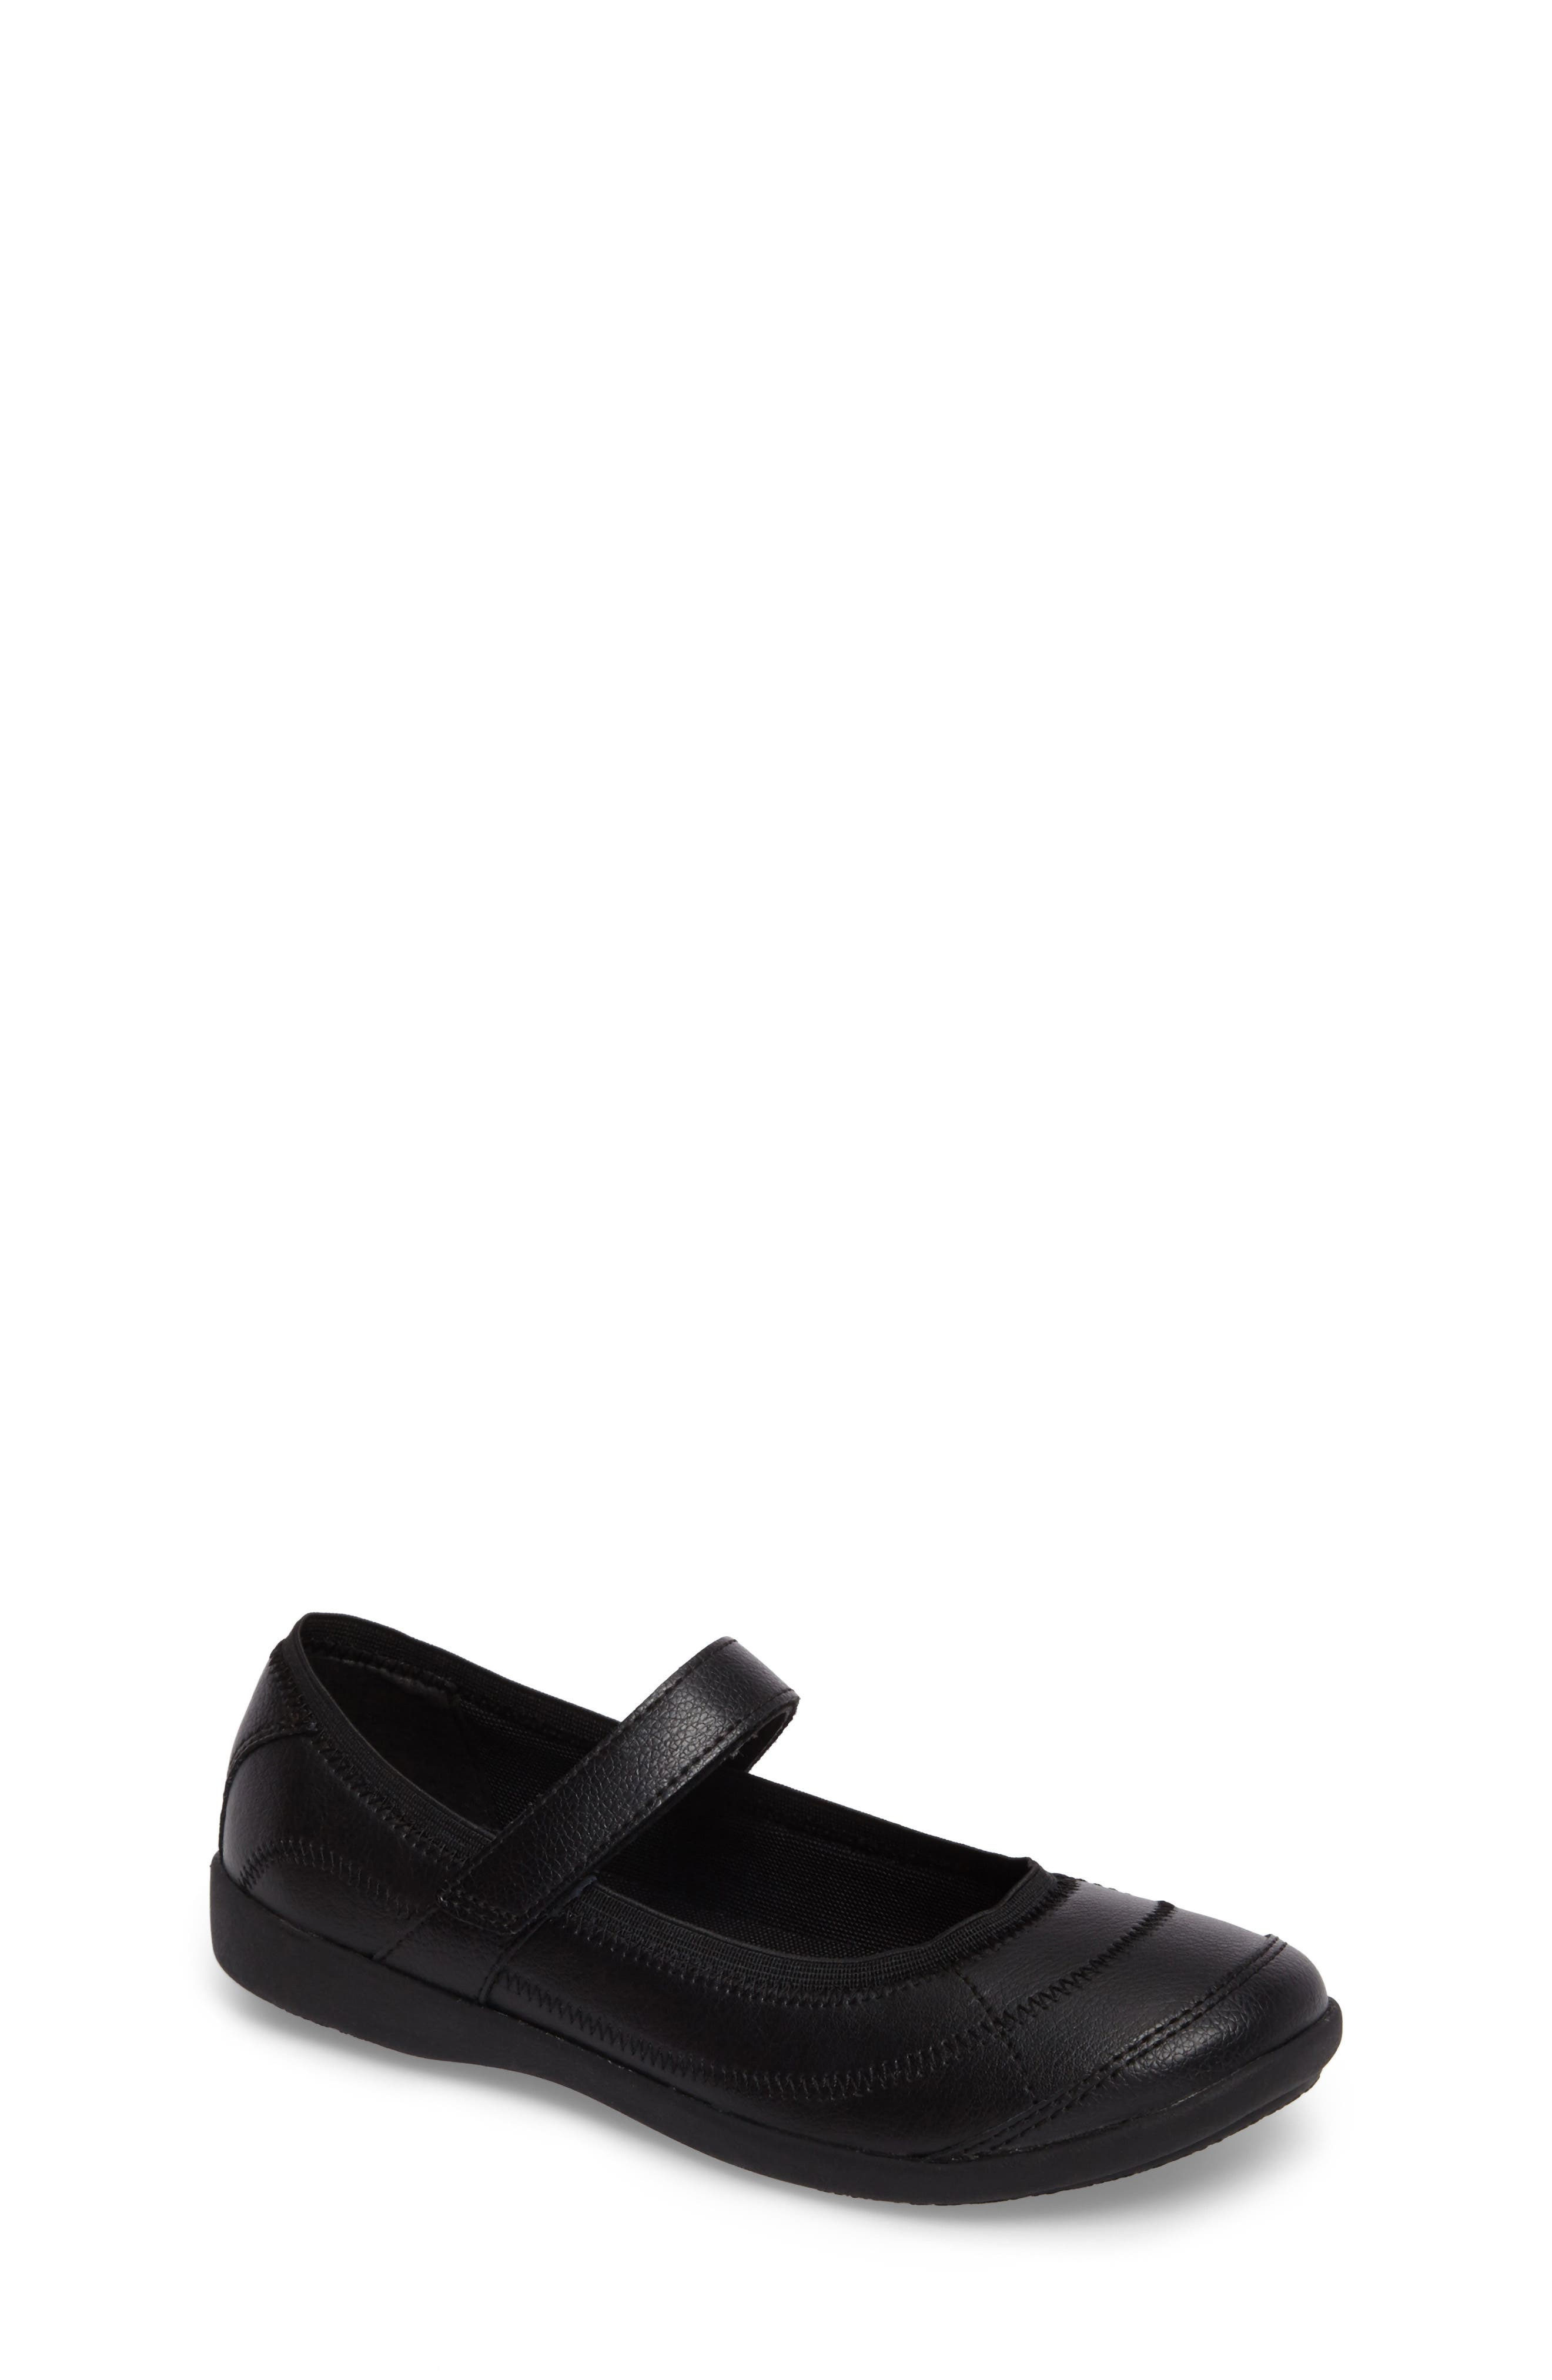 HUSH PUPPIES<SUP>®</SUP>, Reese Mary Jane Flat, Main thumbnail 1, color, BLACK LEATHER